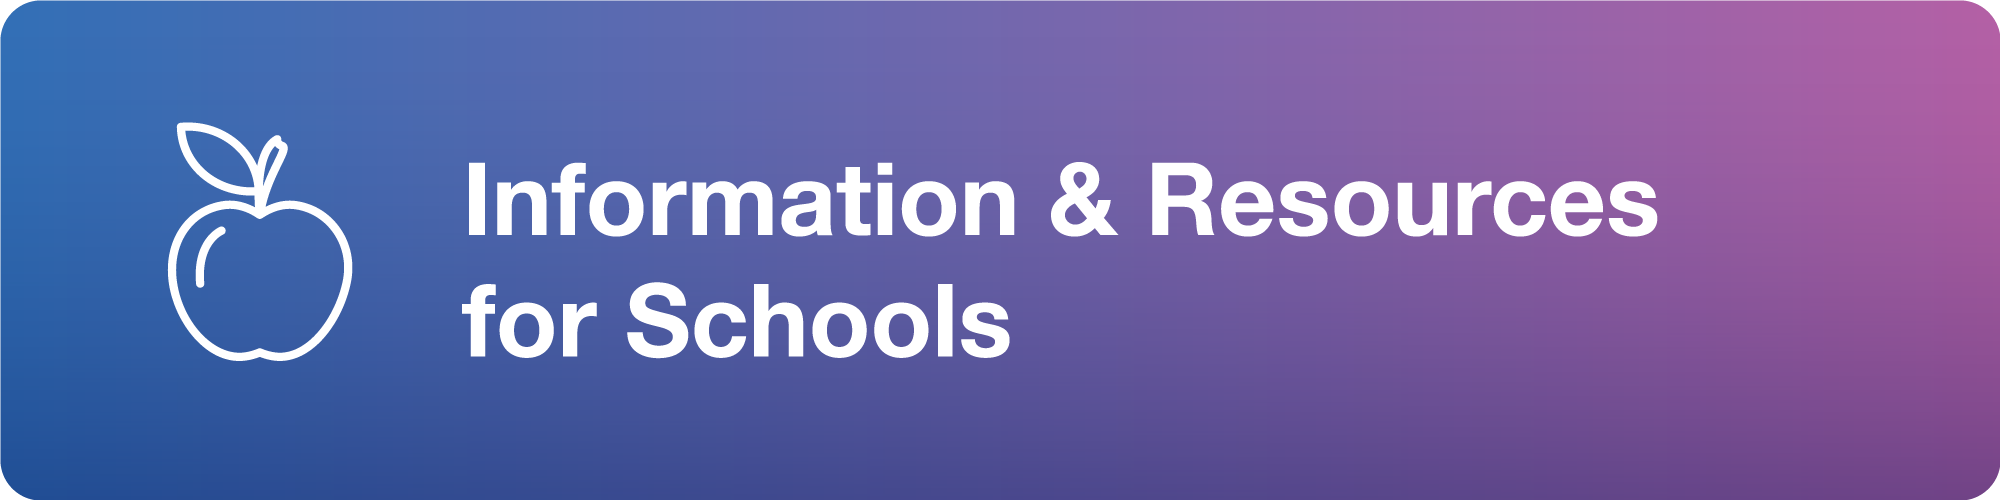 Information & Resources for Schools